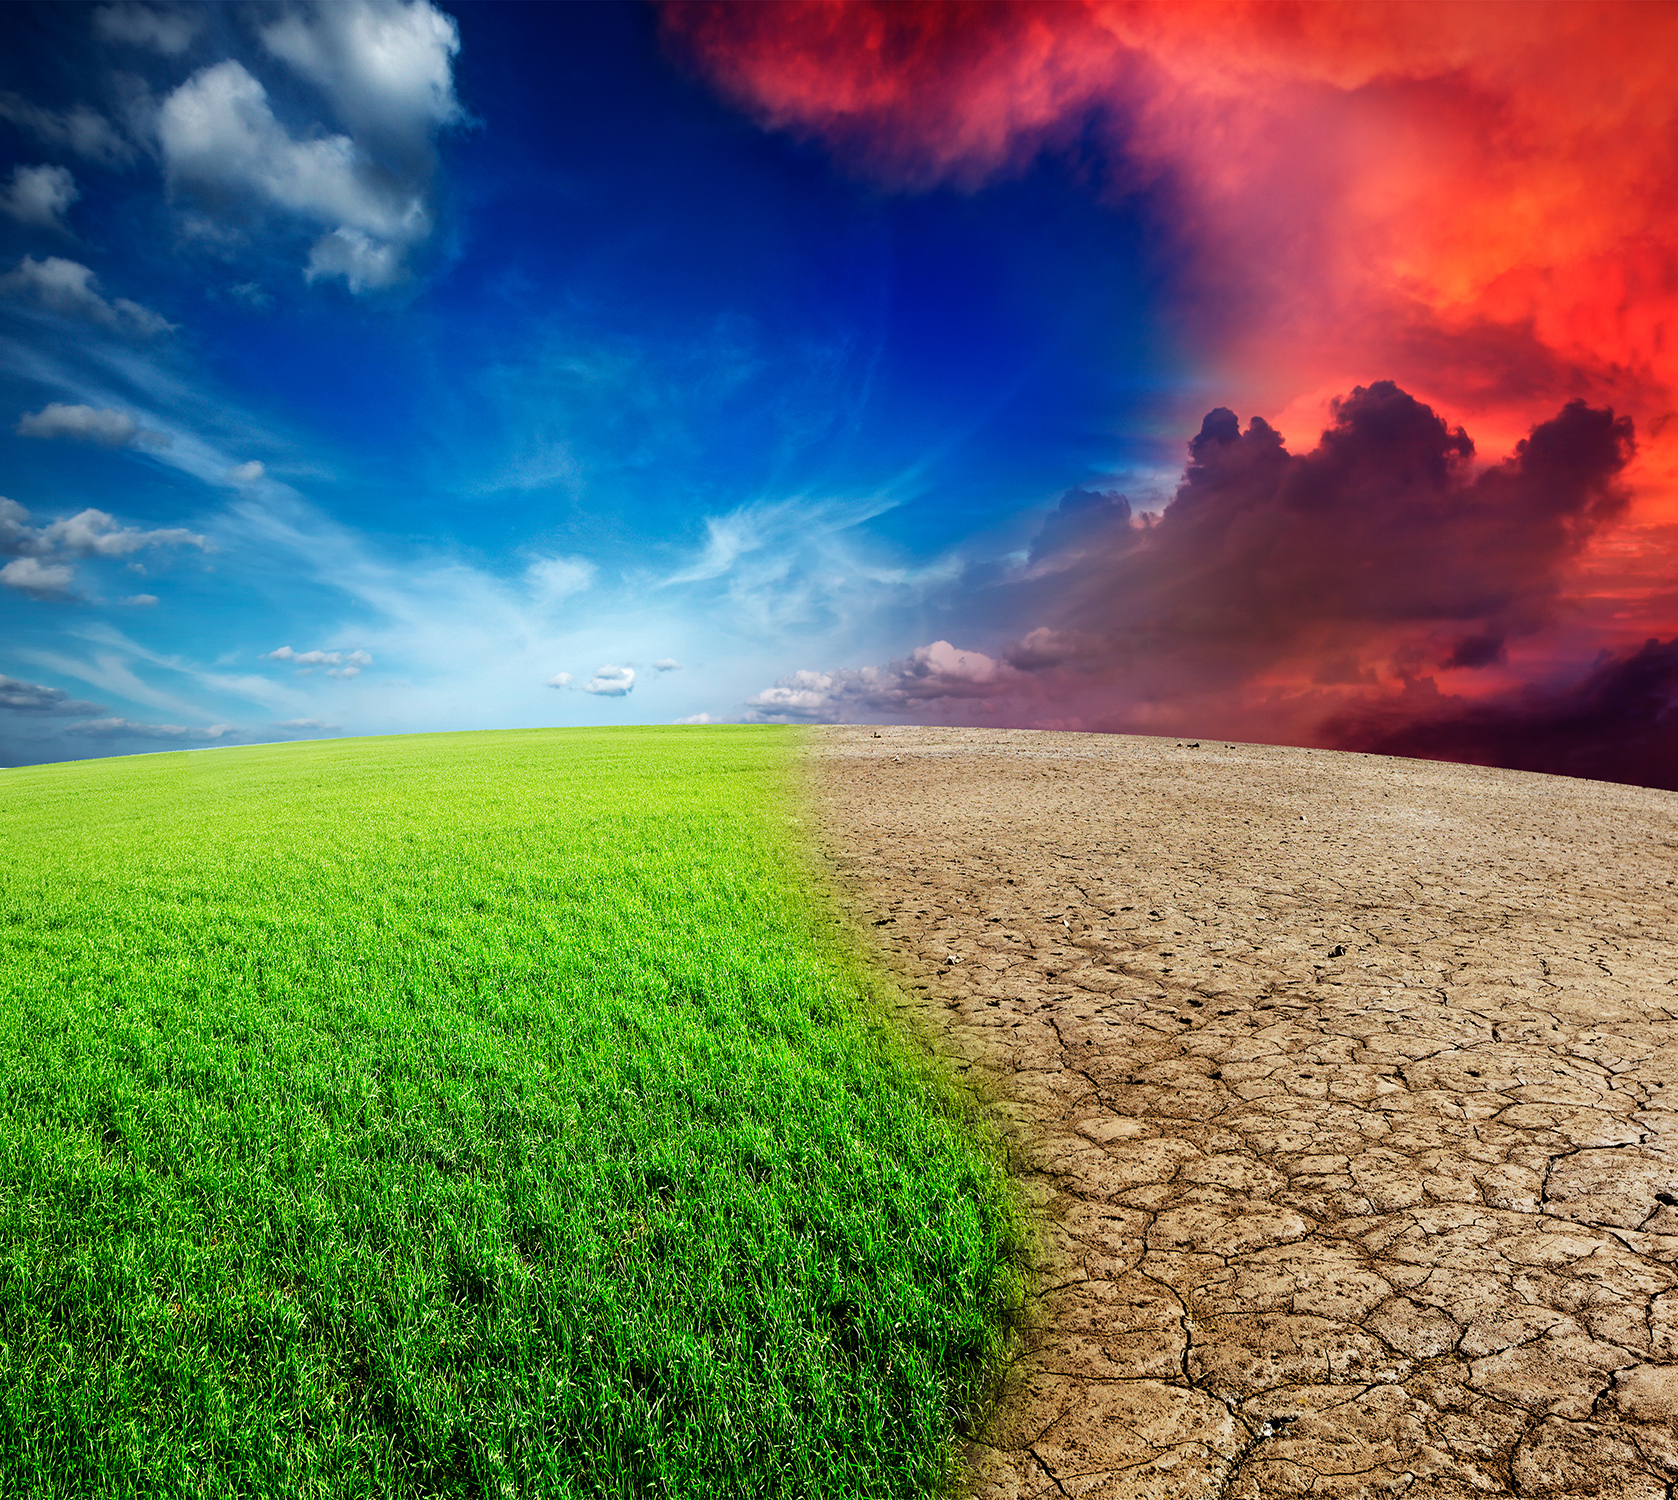 Survey Shows 8-in-10 Americans Believe in Climate Change